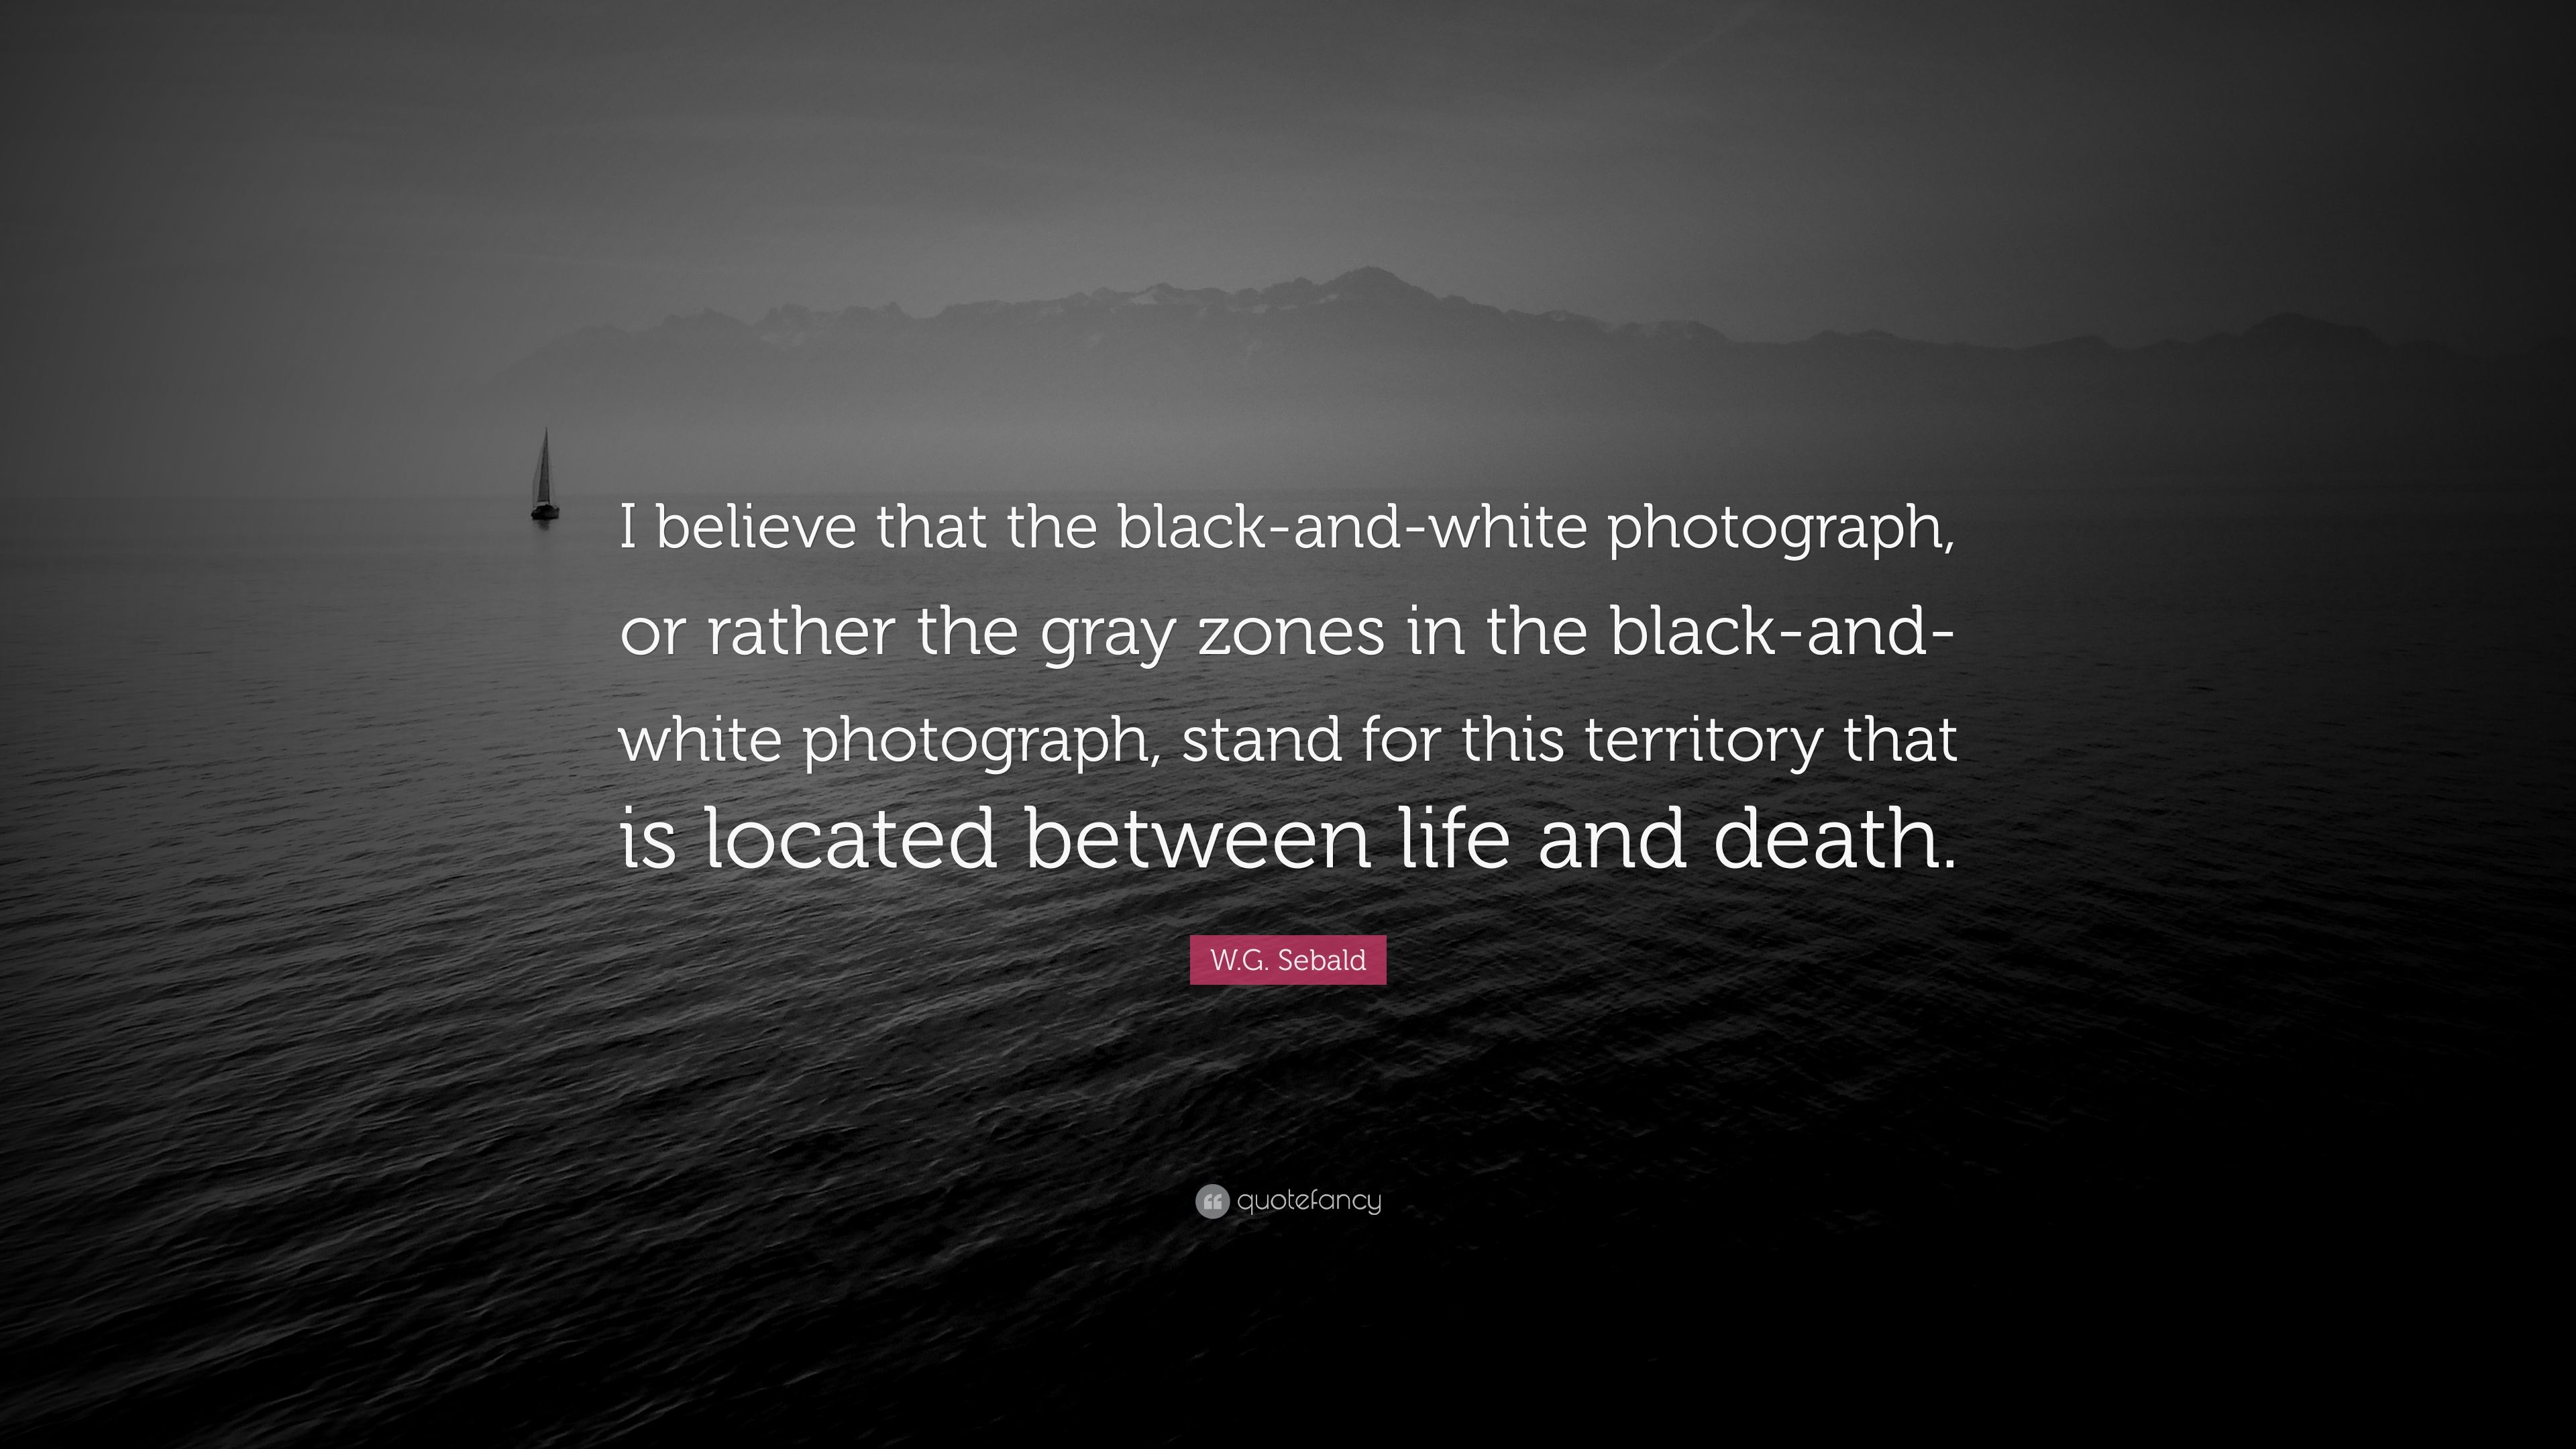 W g sebald quote i believe that the black and white photograph